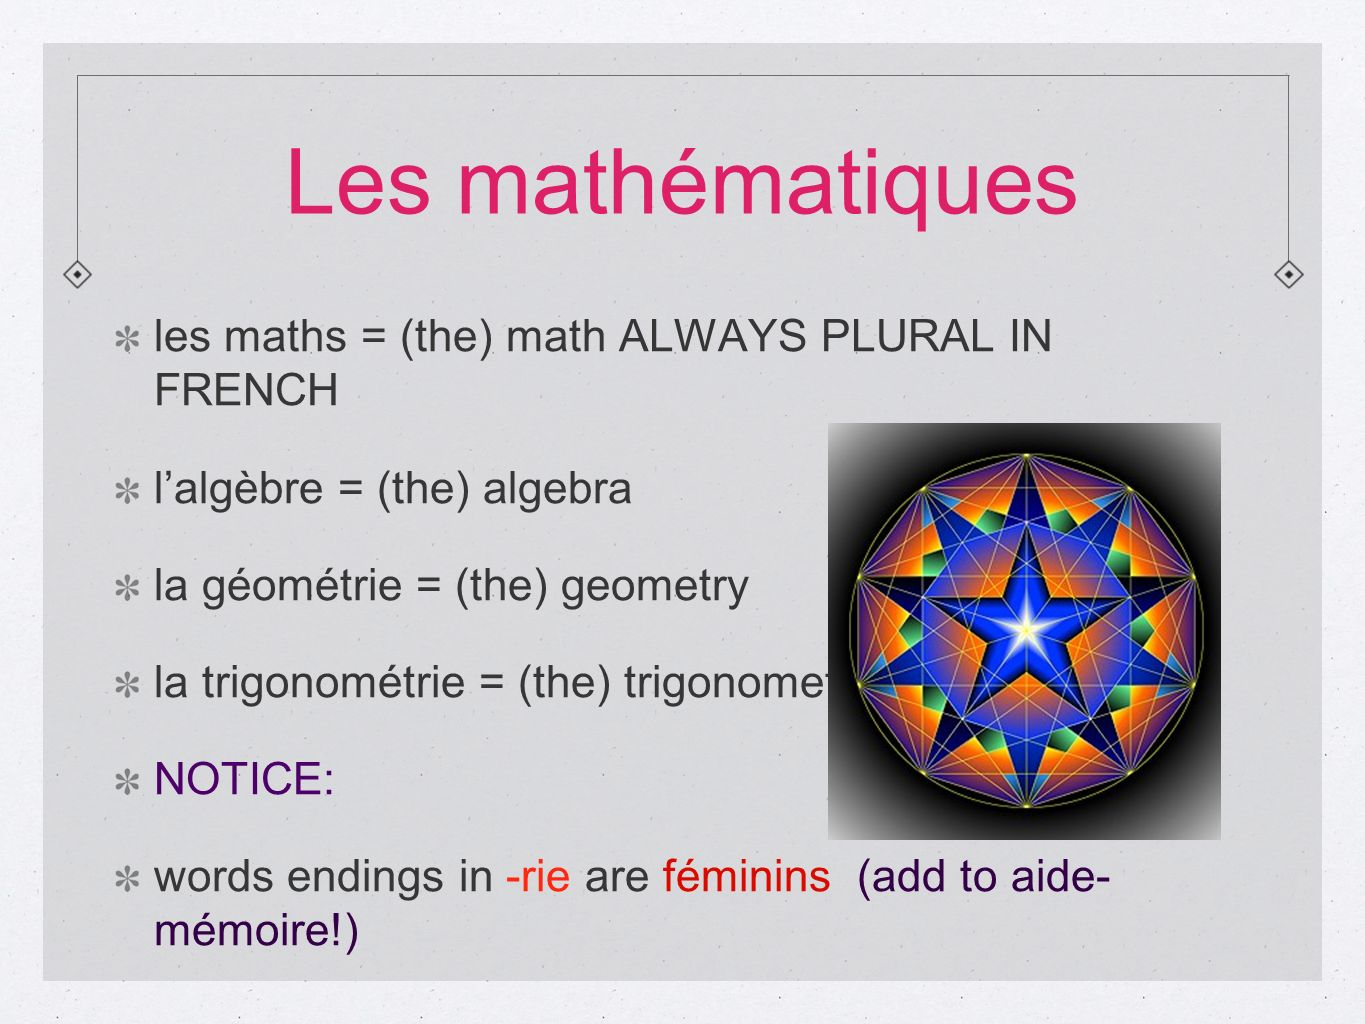 Les mathématiques les maths = (the) math ALWAYS PLURAL IN FRENCH lalgèbre = (the) algebra la géométrie = (the) geometry la trigonométrie = (the) trigo